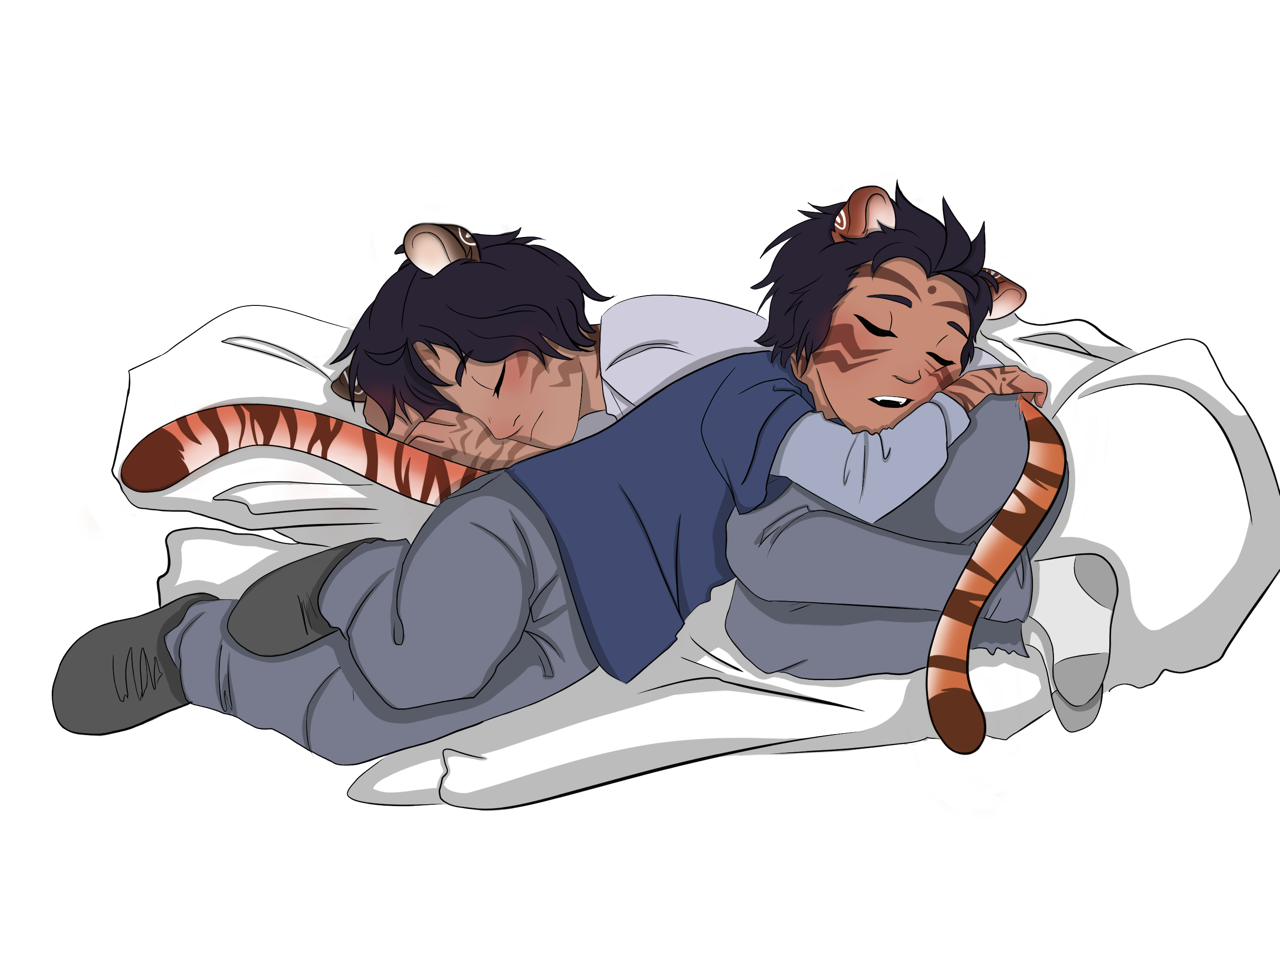 Sleepy drawing couple. You ve entered the